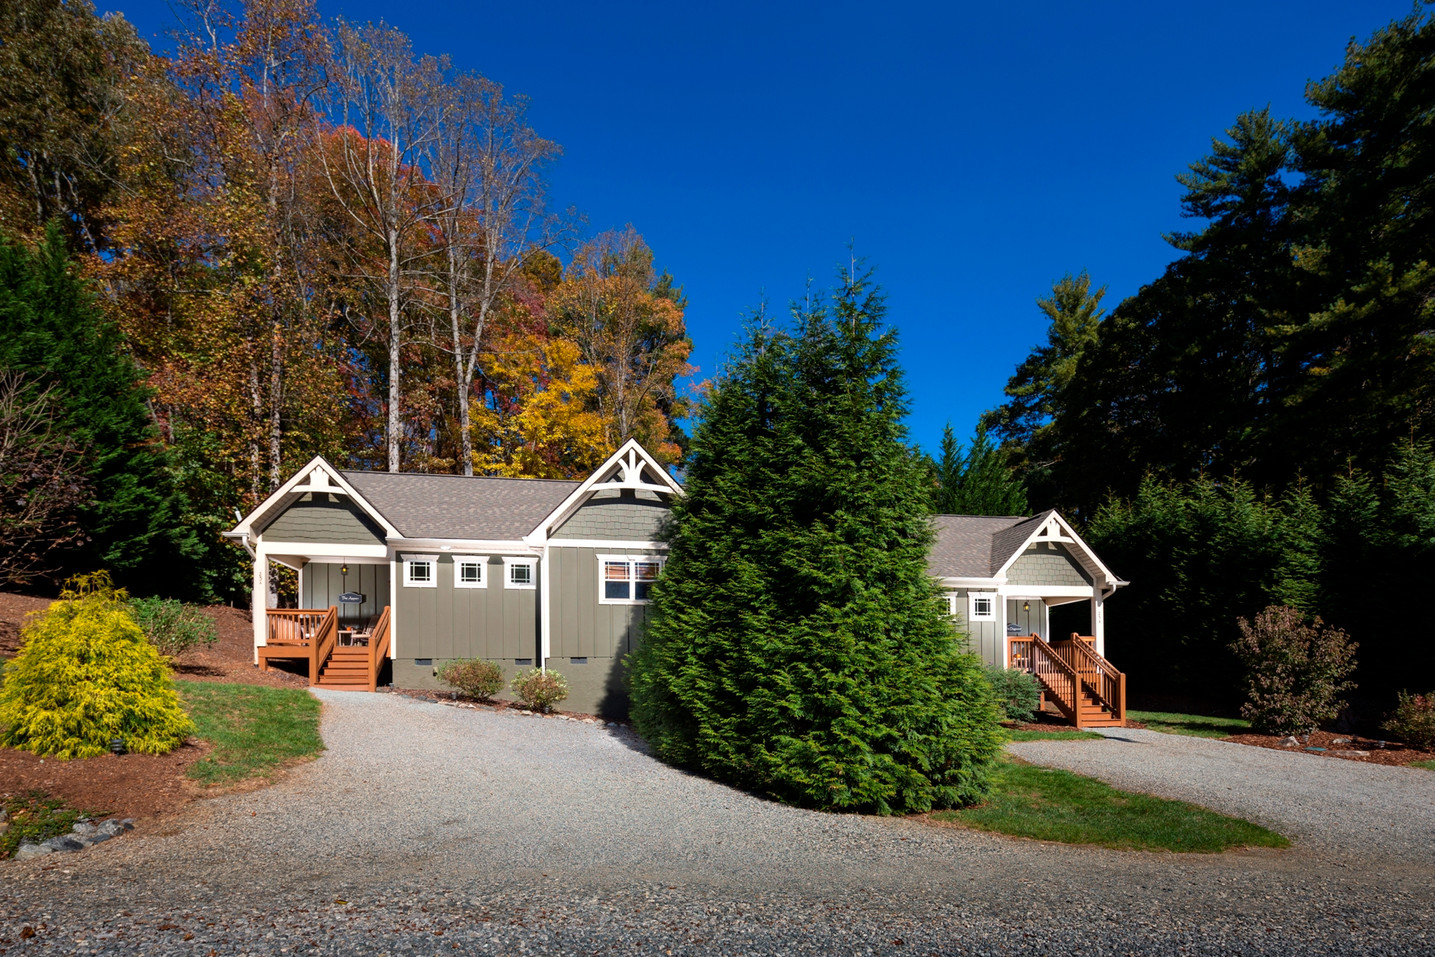 Cottages with views